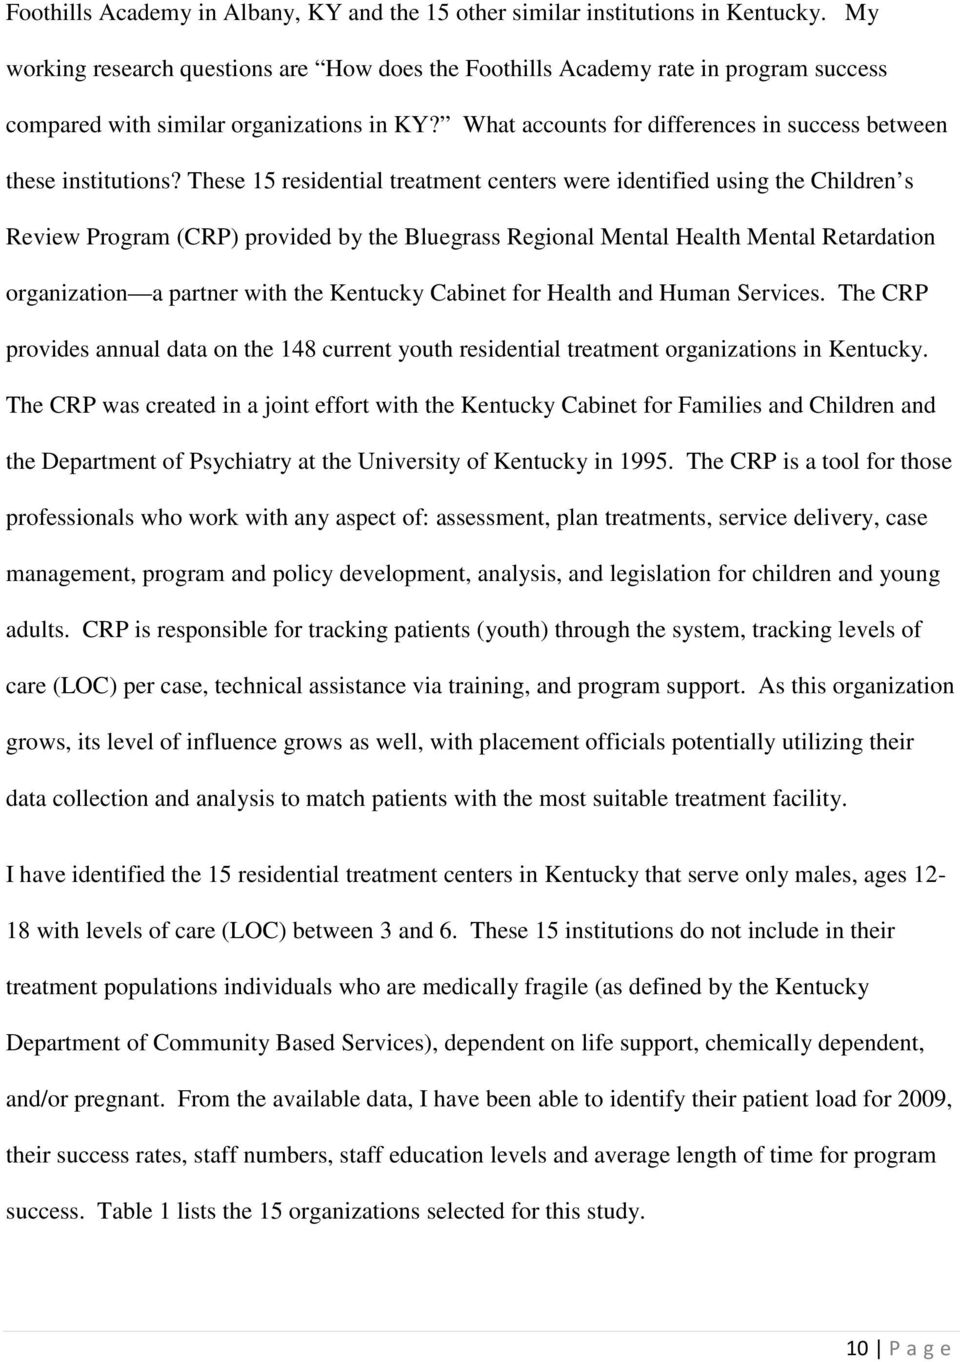 These 15 residential treatment centers were identified using the Children s Review Program (CRP) provided by the Bluegrass Regional Mental Health Mental Retardation organization a partner with the